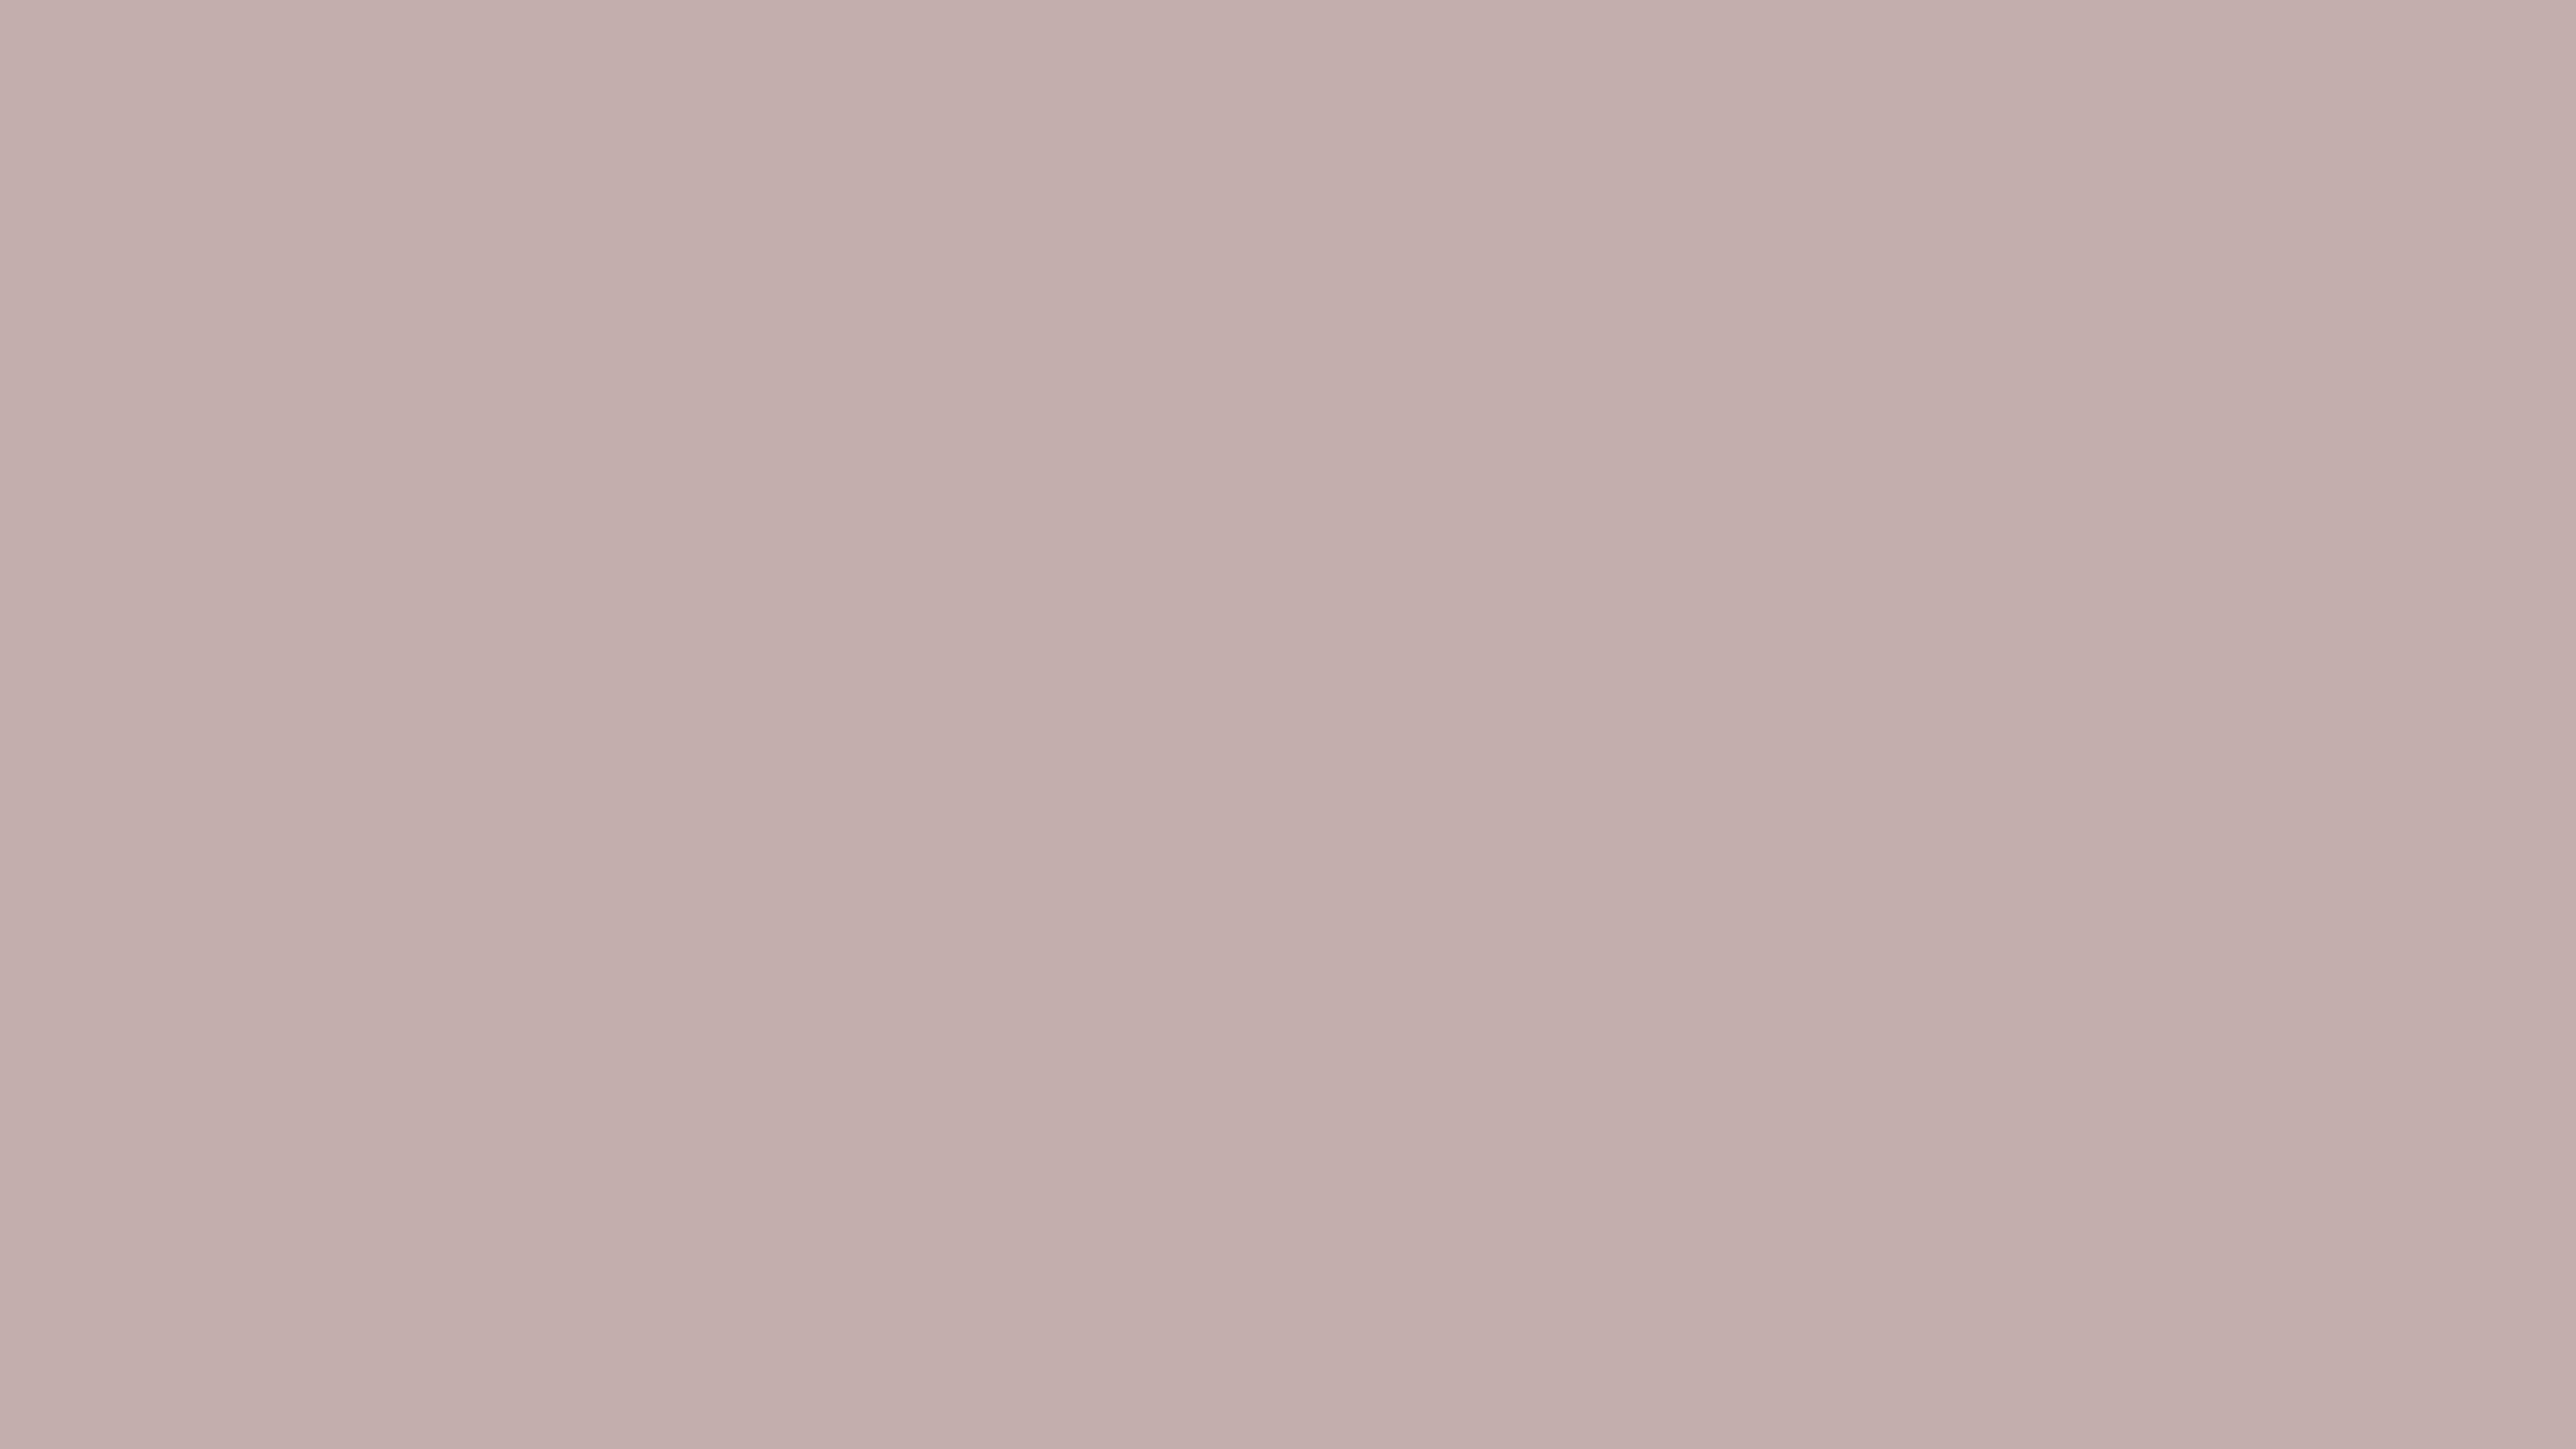 3840x2160 Silver Pink Solid Color Background